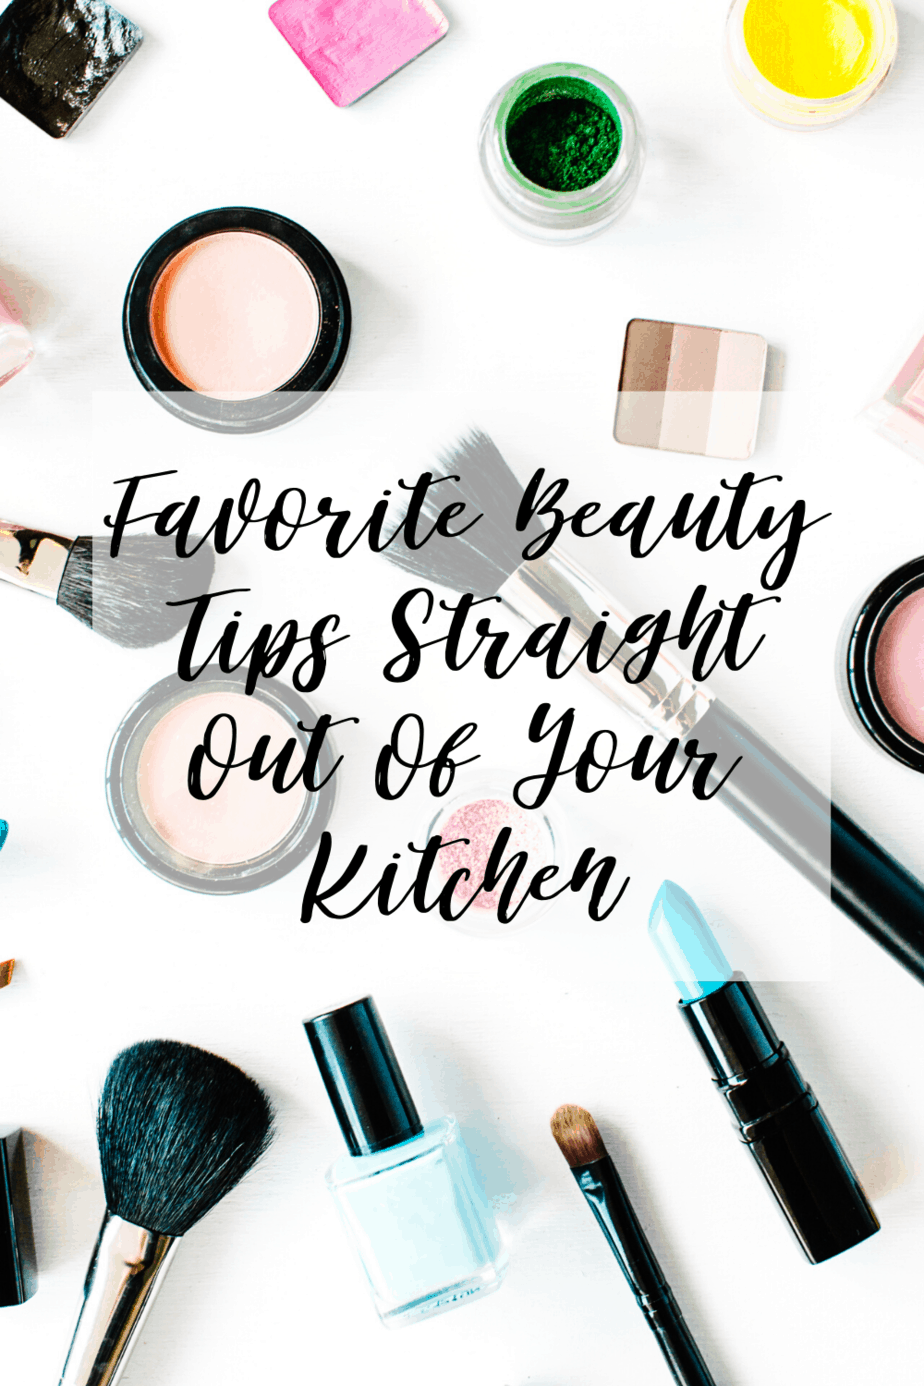 Favorite Beauty Tips Straight Out Of Your Kitchen in 8  Beauty